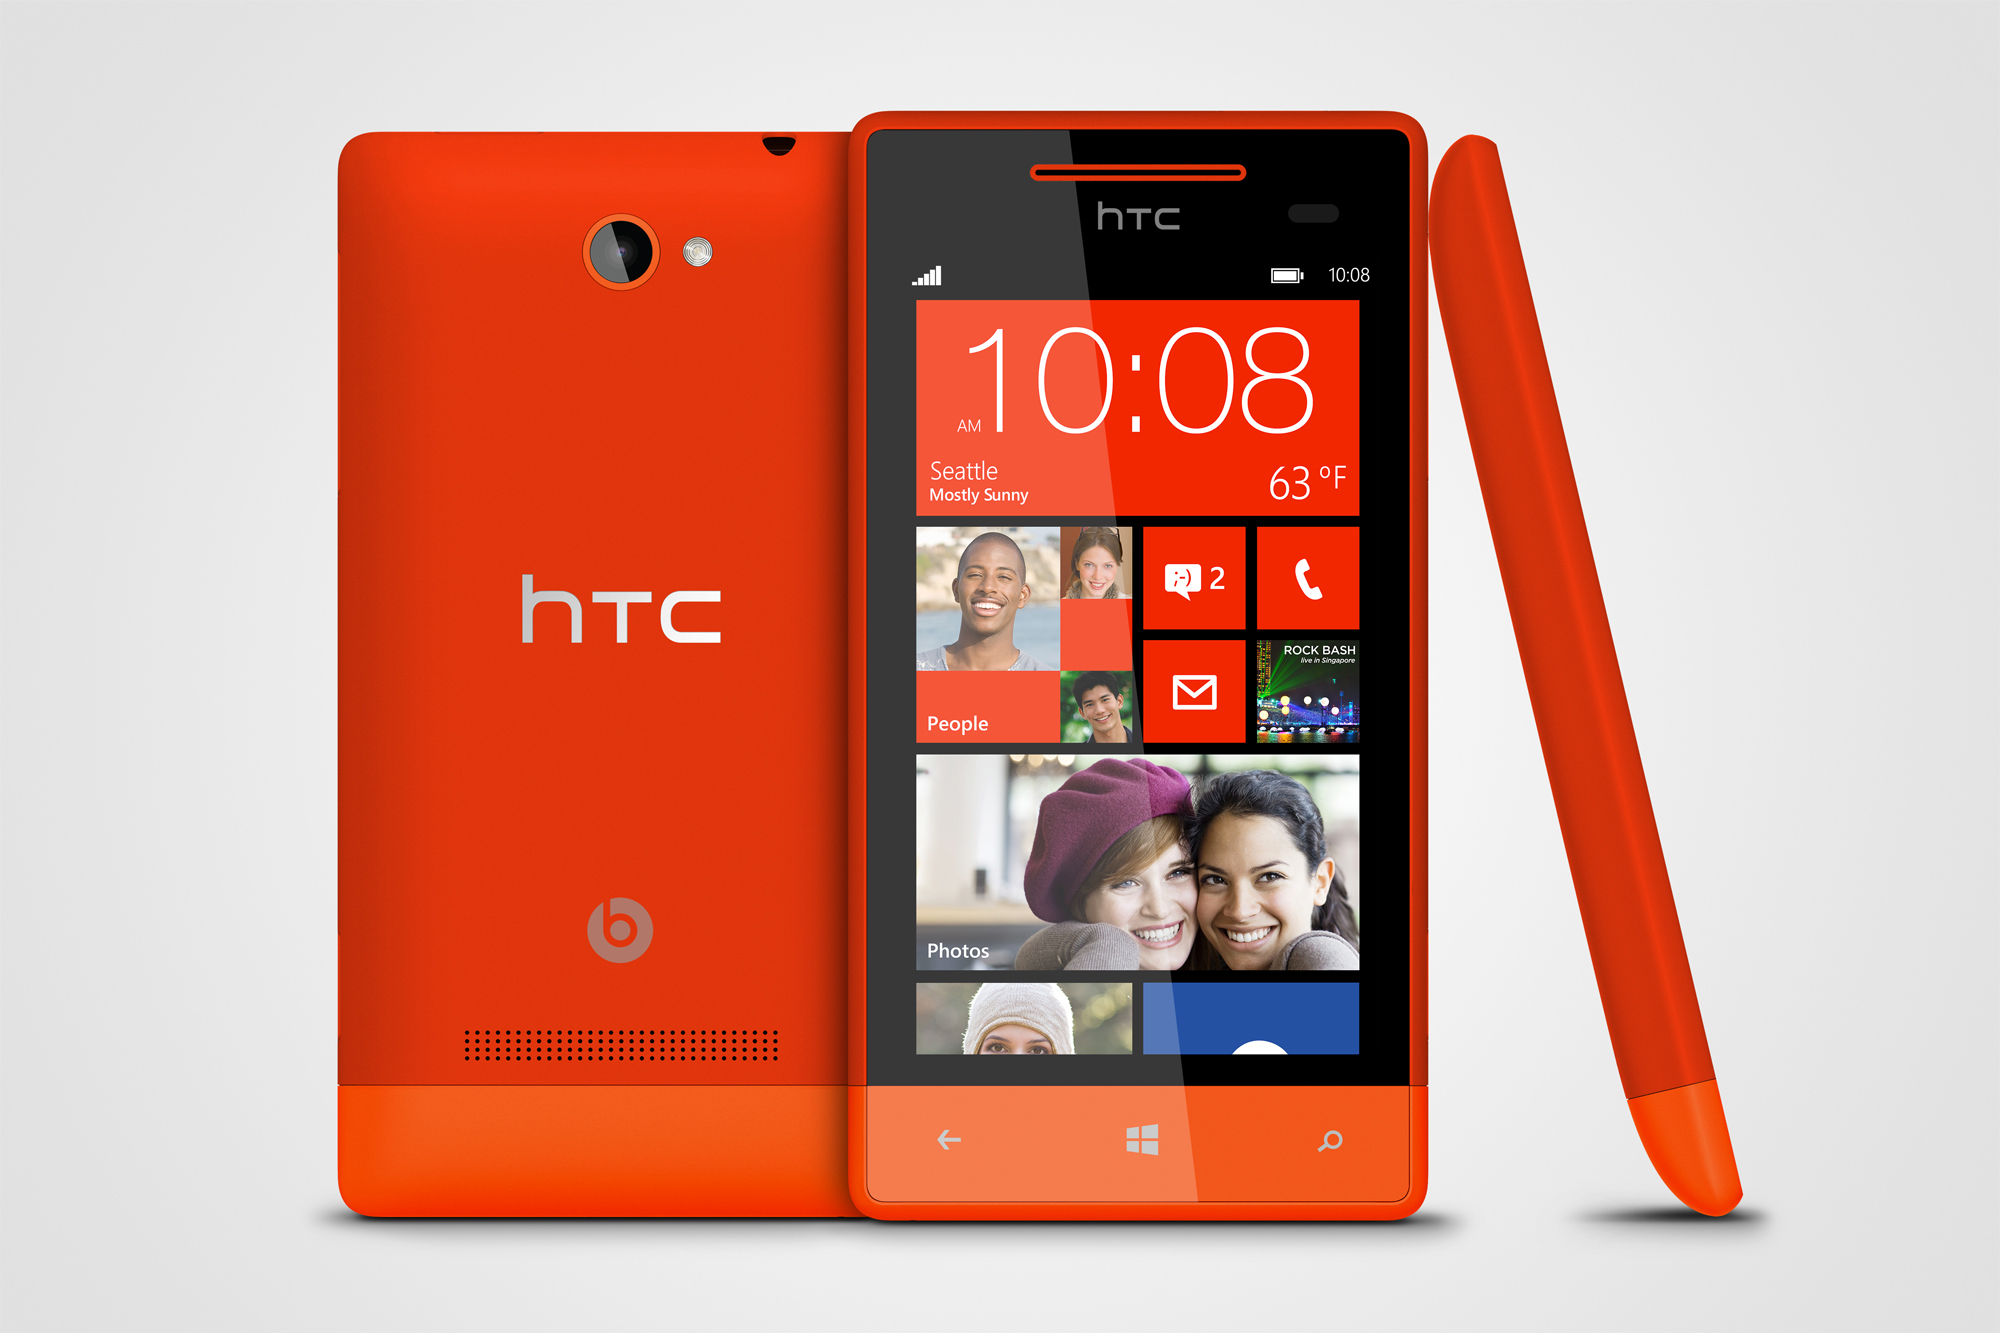 Windows-Phone-8S-by-HTC-Red